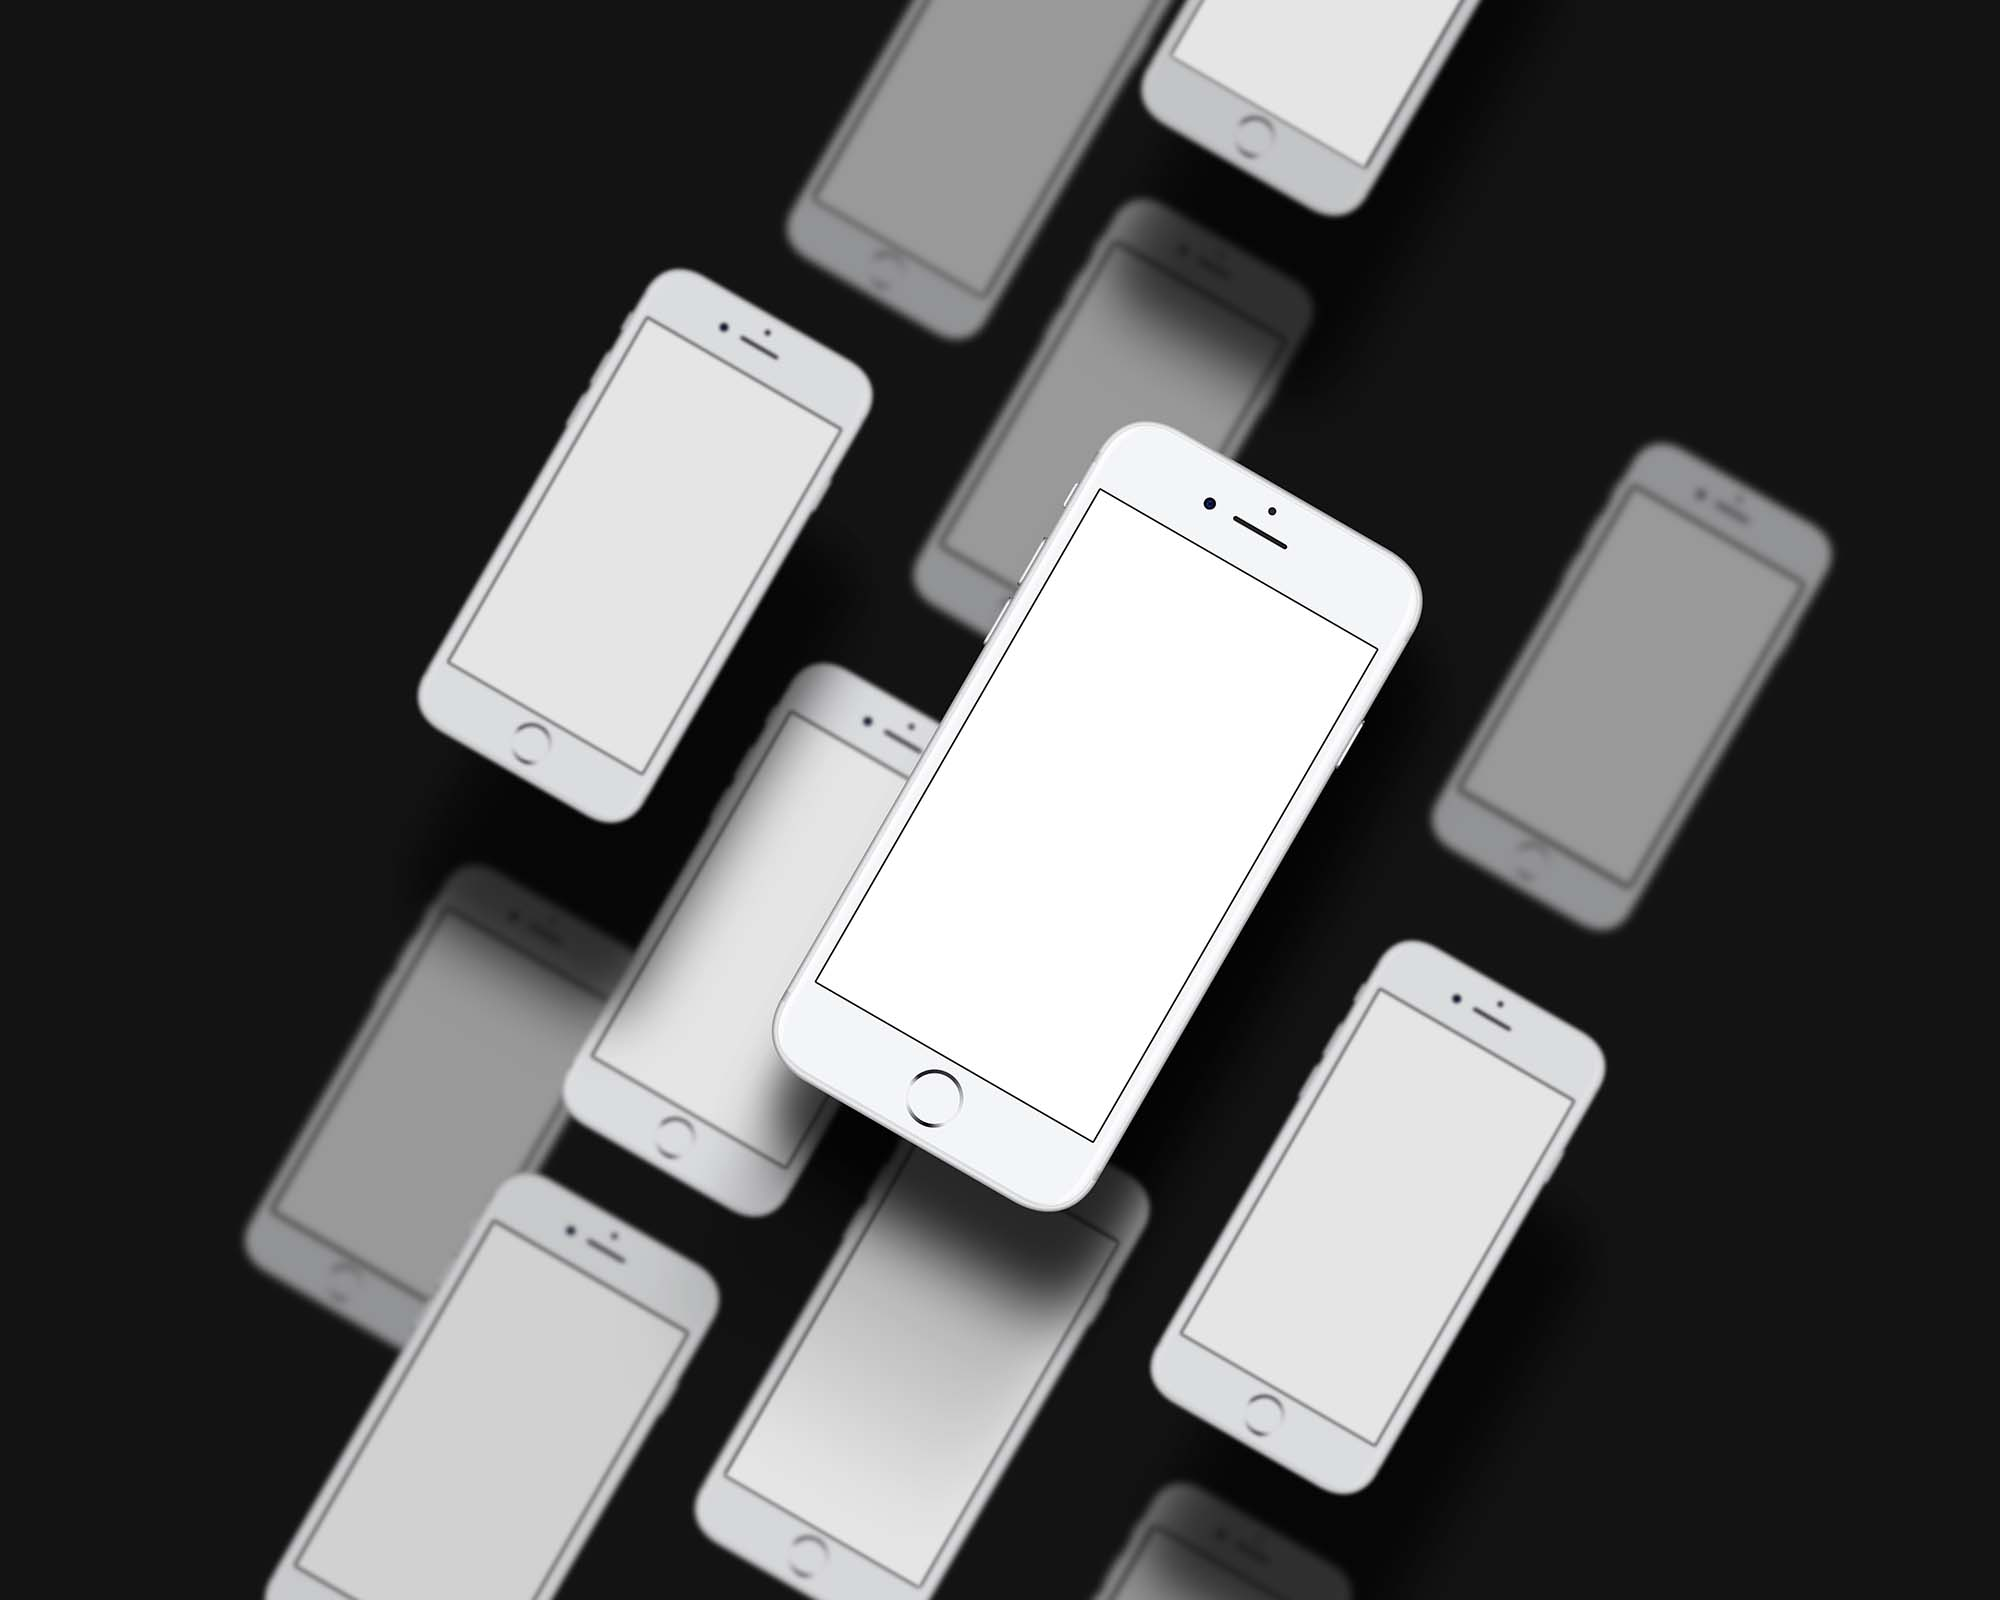 Multiple App Screen Showcase Mockup 2